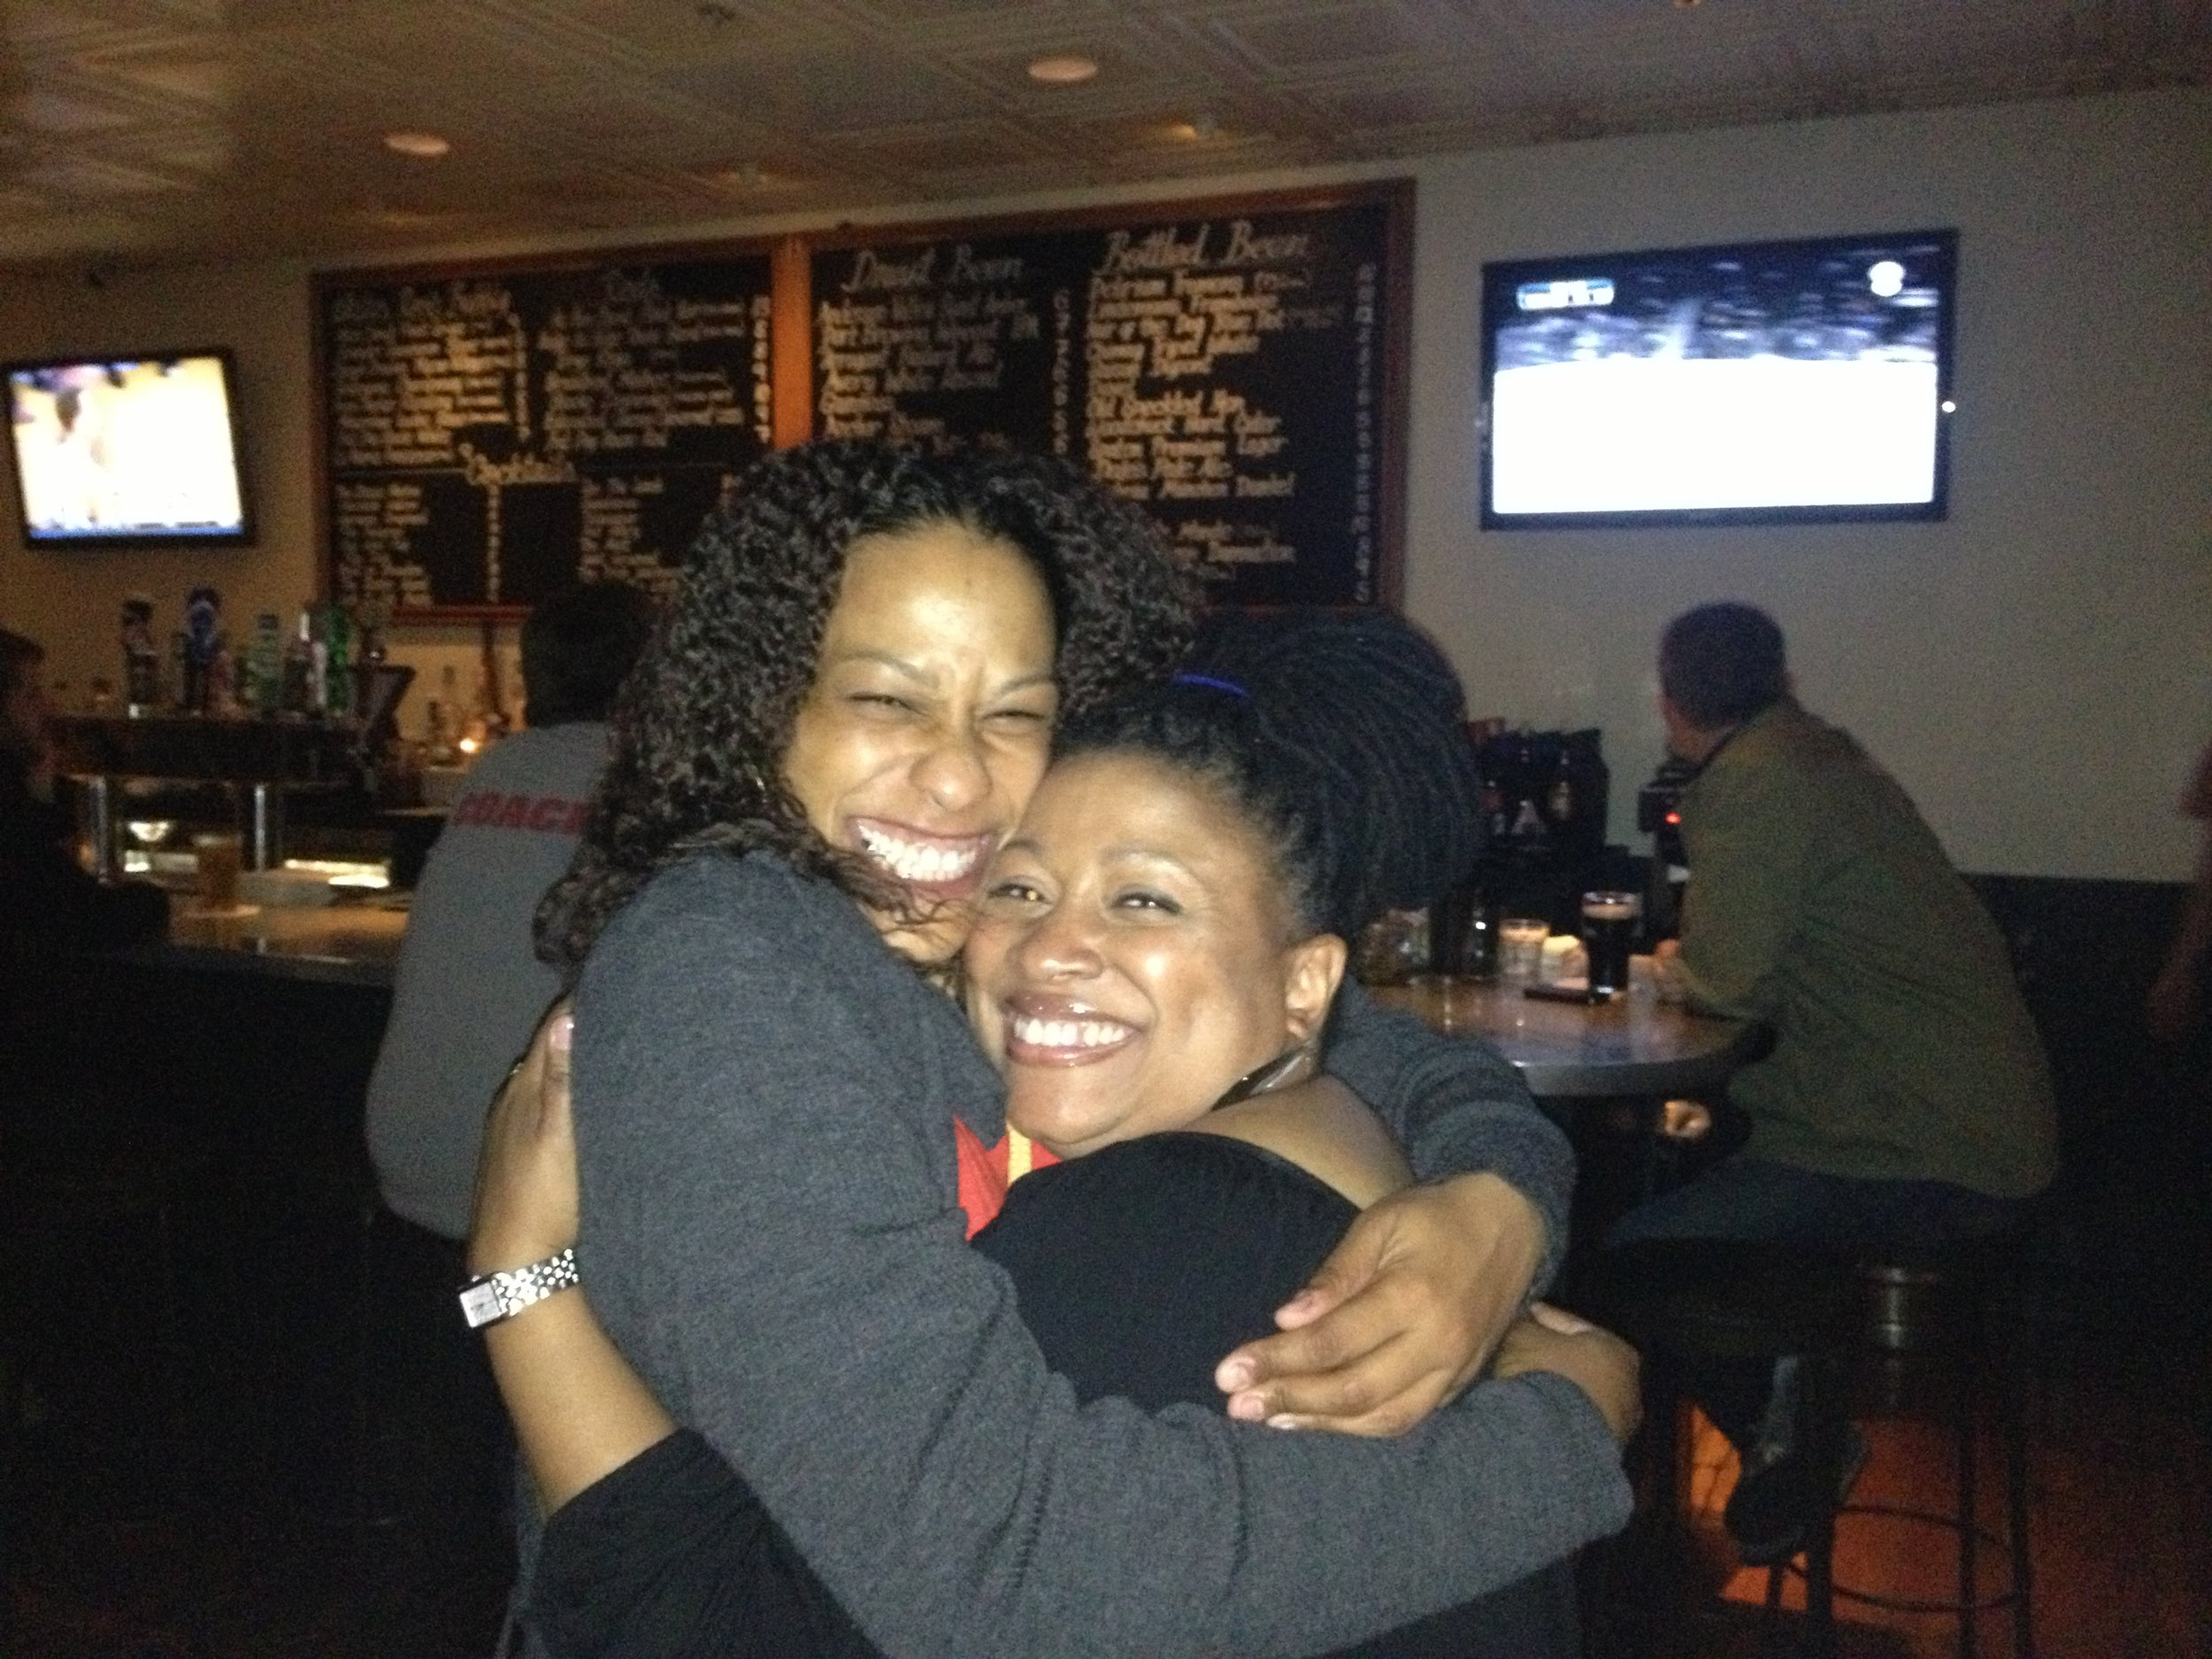 Frangela - Frances Callier and Angela V. Shelton of the comedy duo Frangela. Comedians, do-it-yourself biohackers, podcasters of The Final Word Podcast and so much more.http://frangela.com/https://audioboom.com/channel/frangela-the-final-word